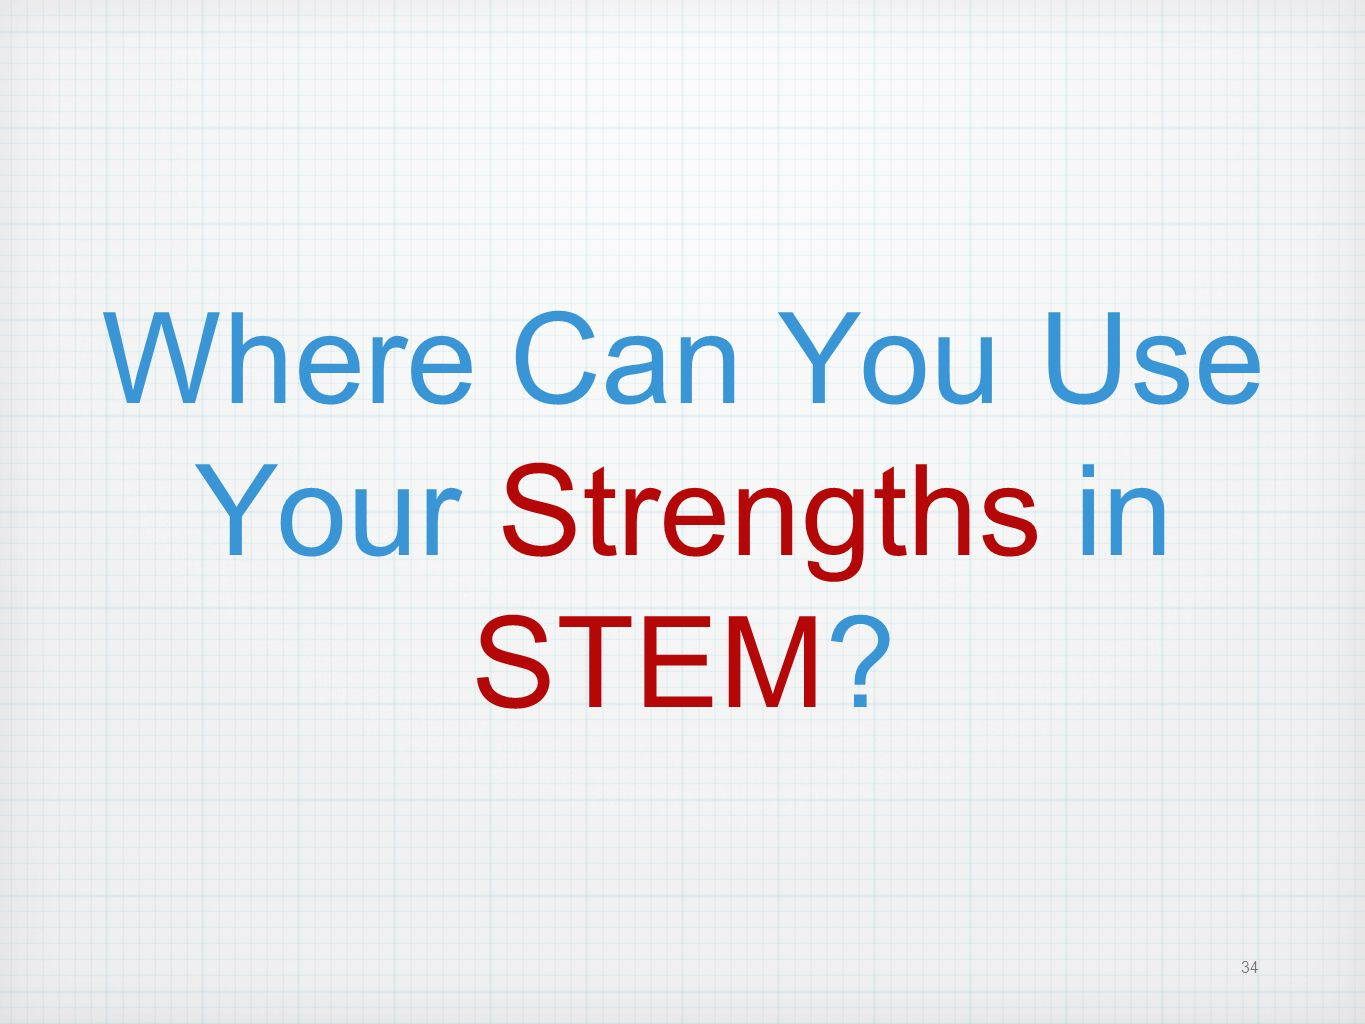 Where Can You Use Your Strengths in STEM